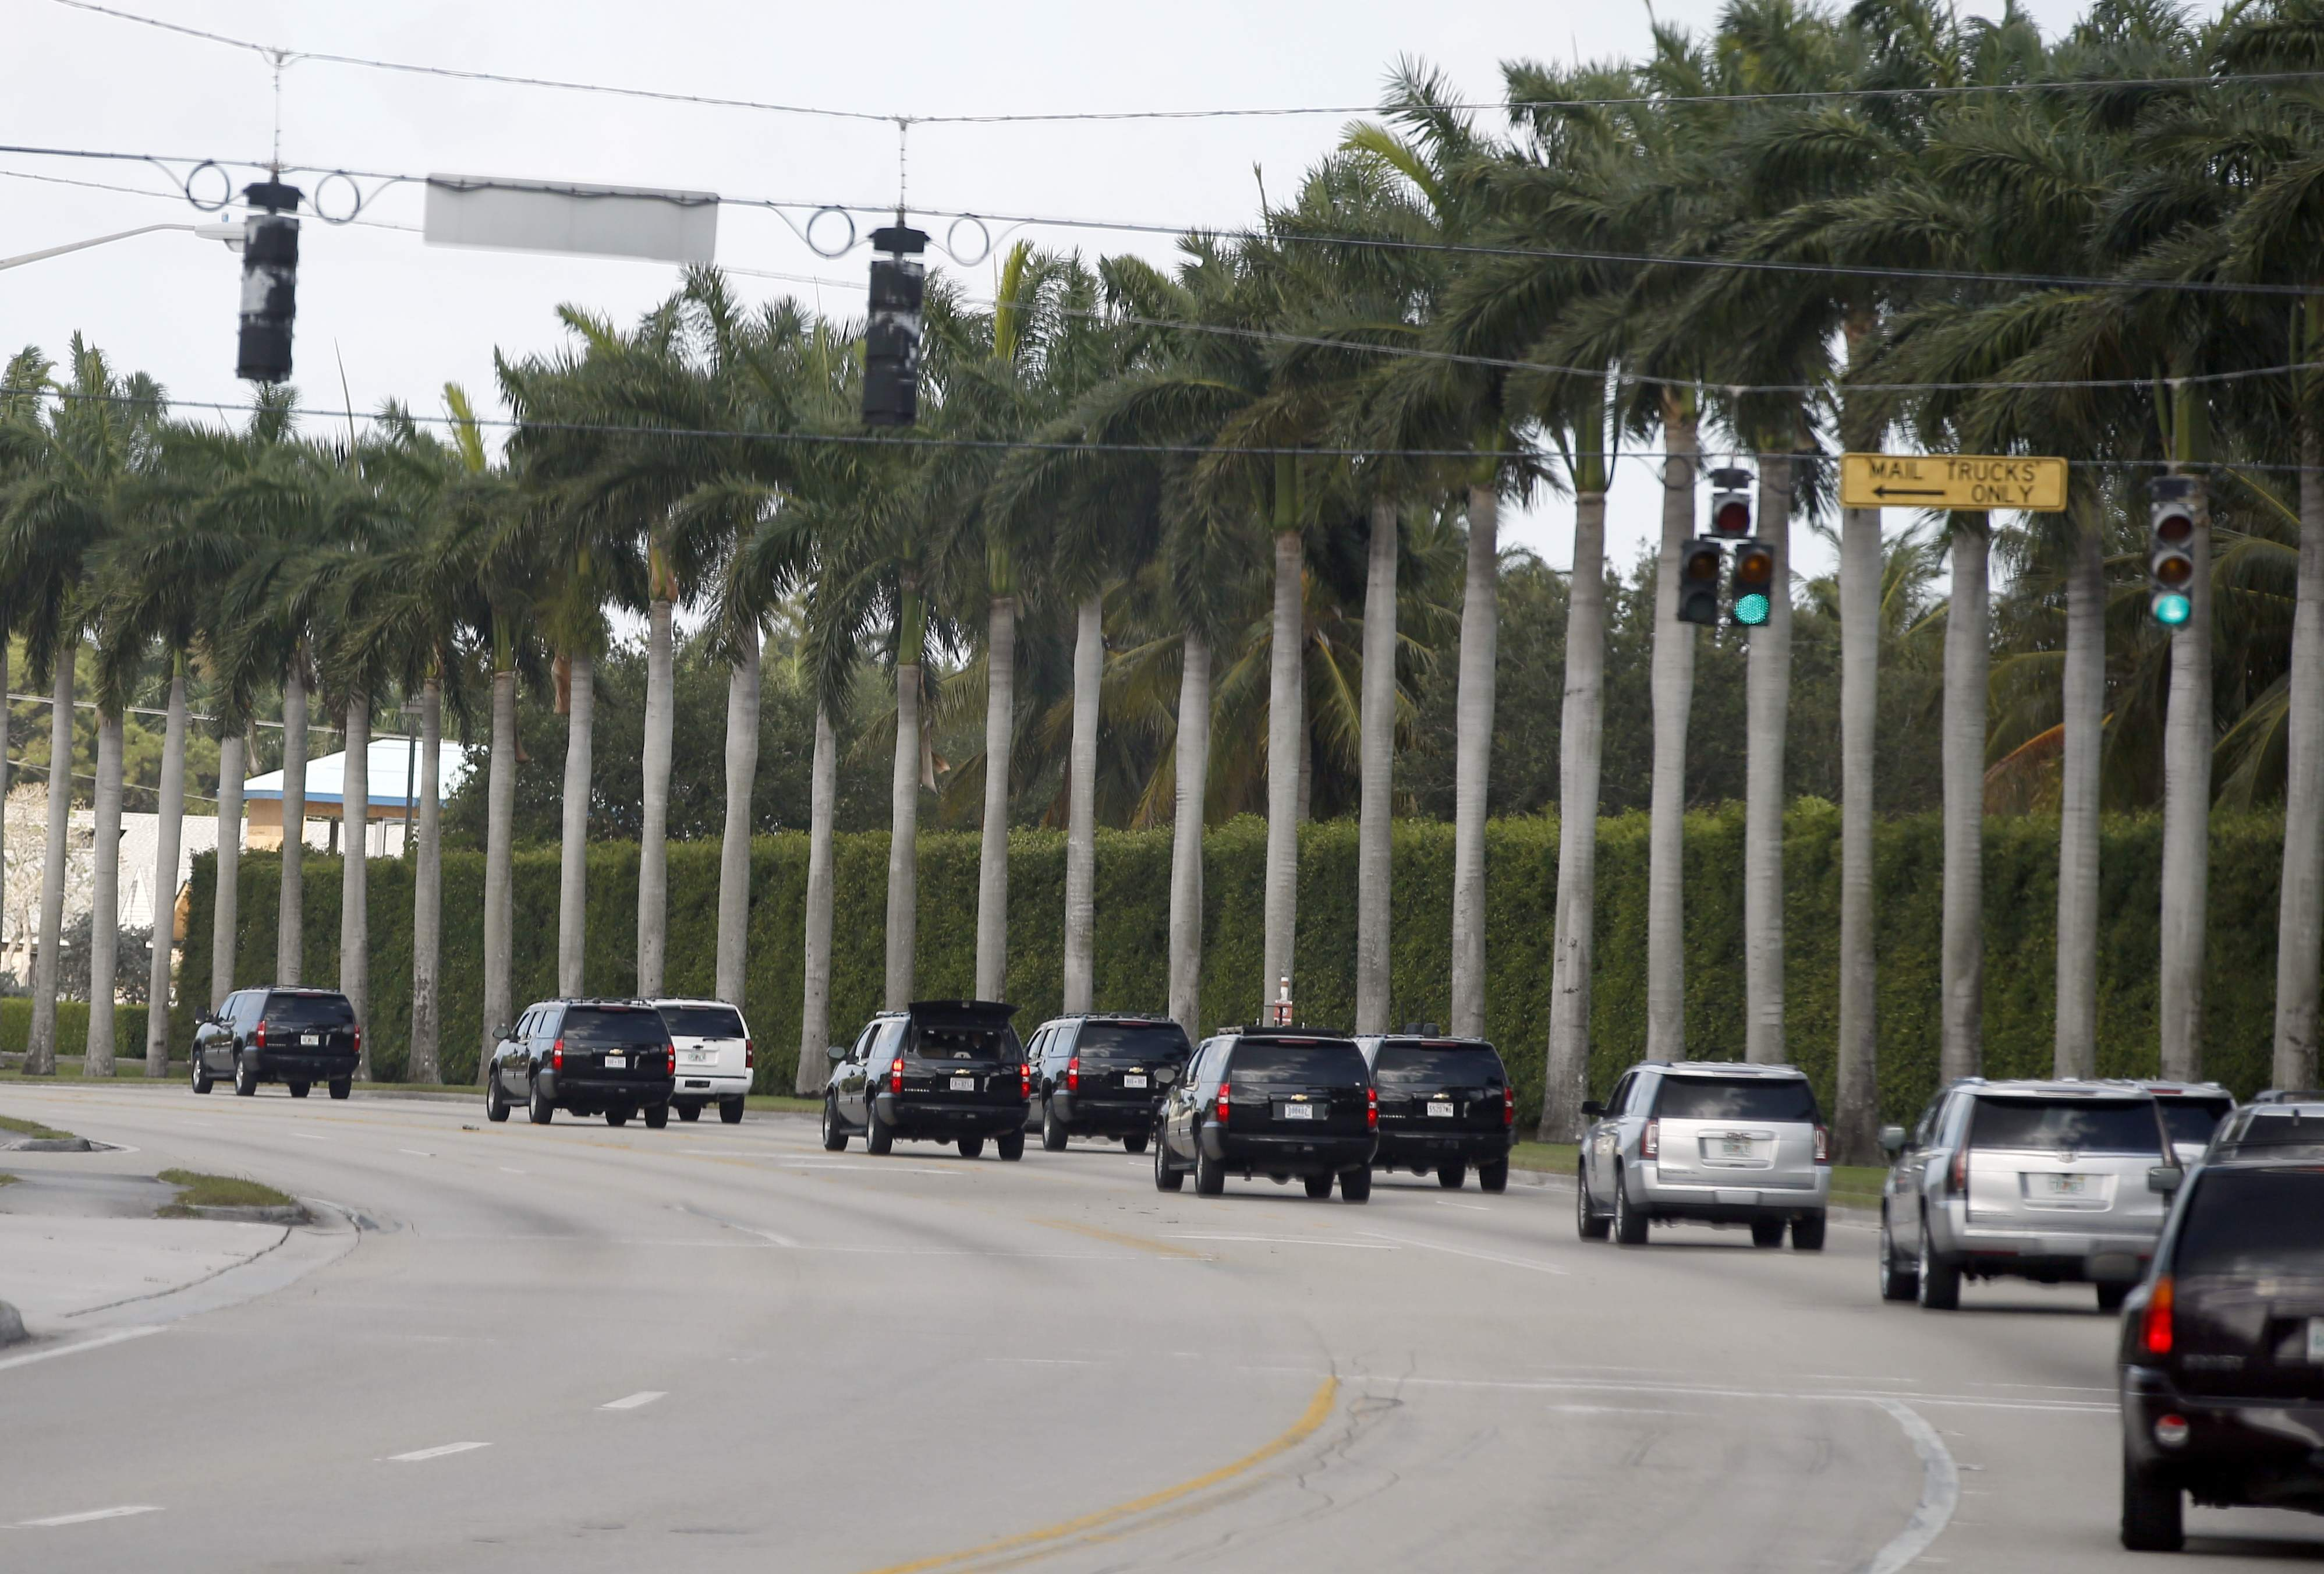 DAY 86 - In this April 15, 2017, file photo, the motorcade for President Donald Trump heads to the Trump International Golf Club in West Palm Beach, Fla. The president was in Florida with his family on day 86 and had no media events and was not photographed. (AP Photo/Alex Brandon, File)